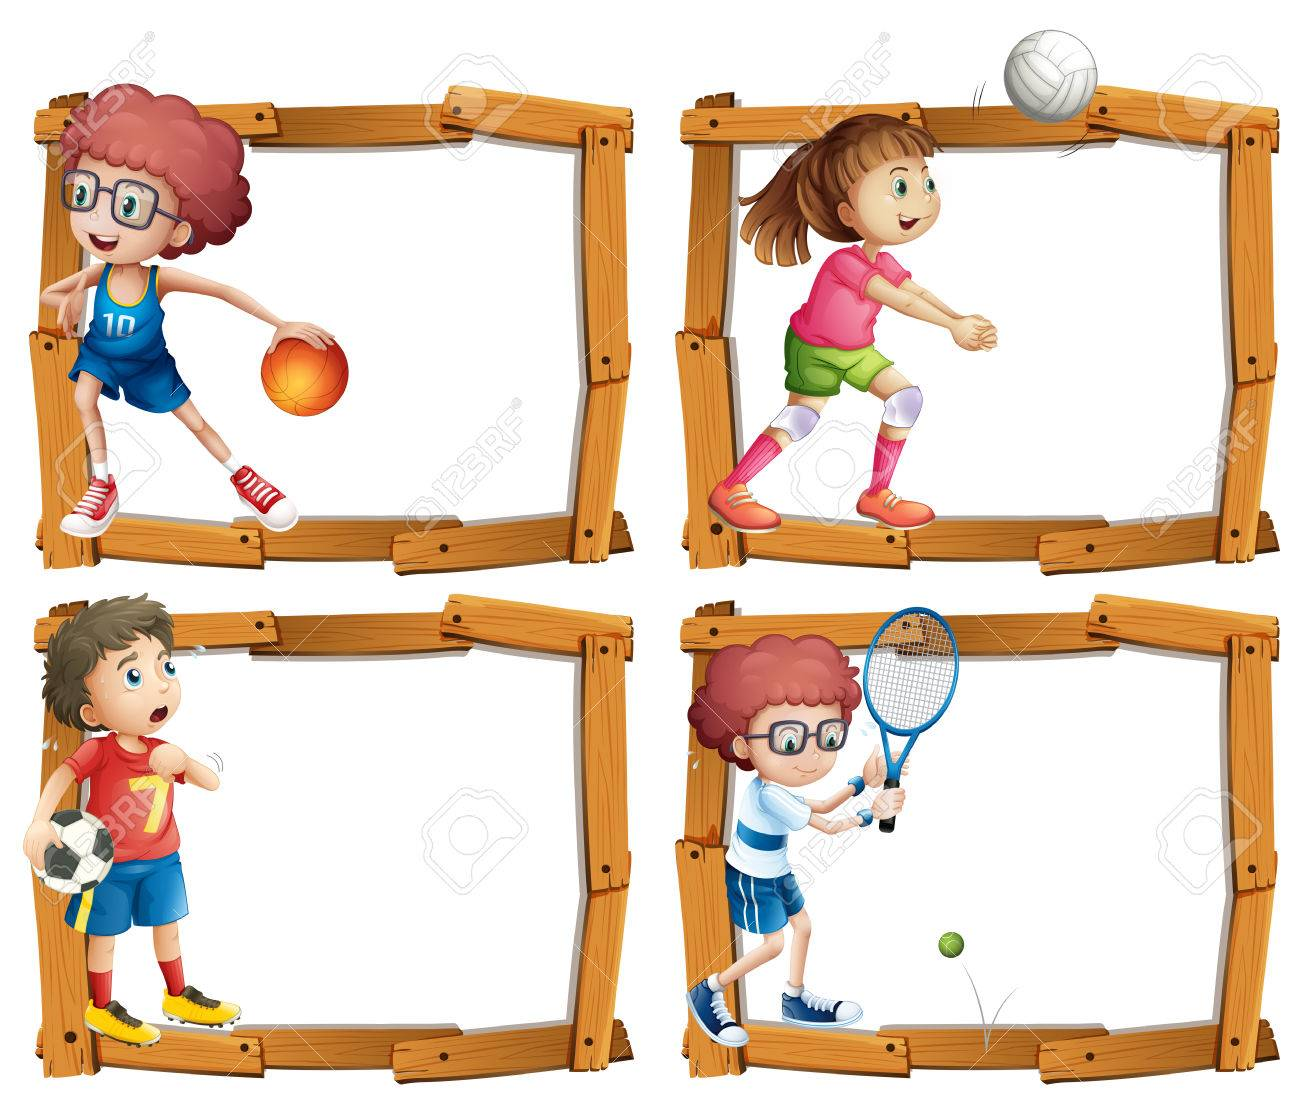 2356cd9eebe Frame template with kids playing sports illustration Stock Vector - 71395407